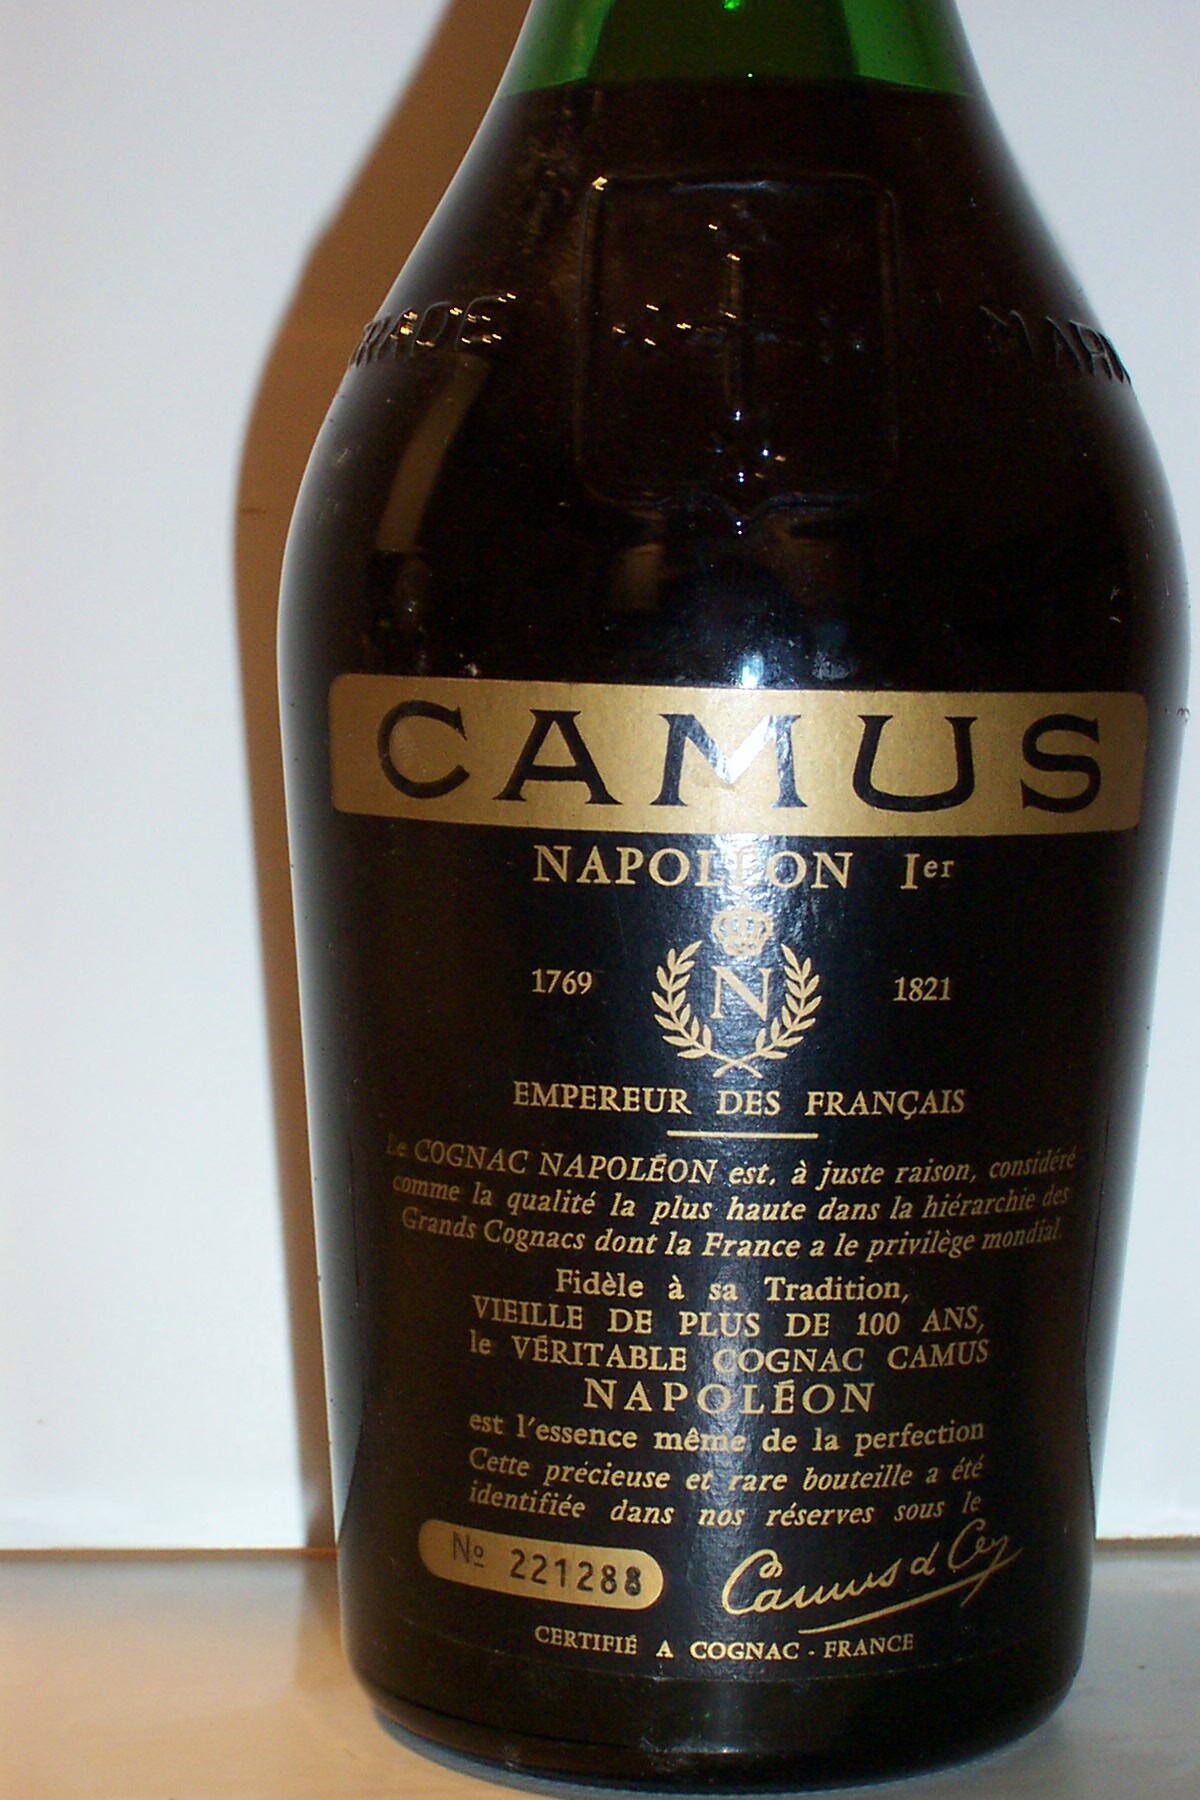 Cognac Camus backside label